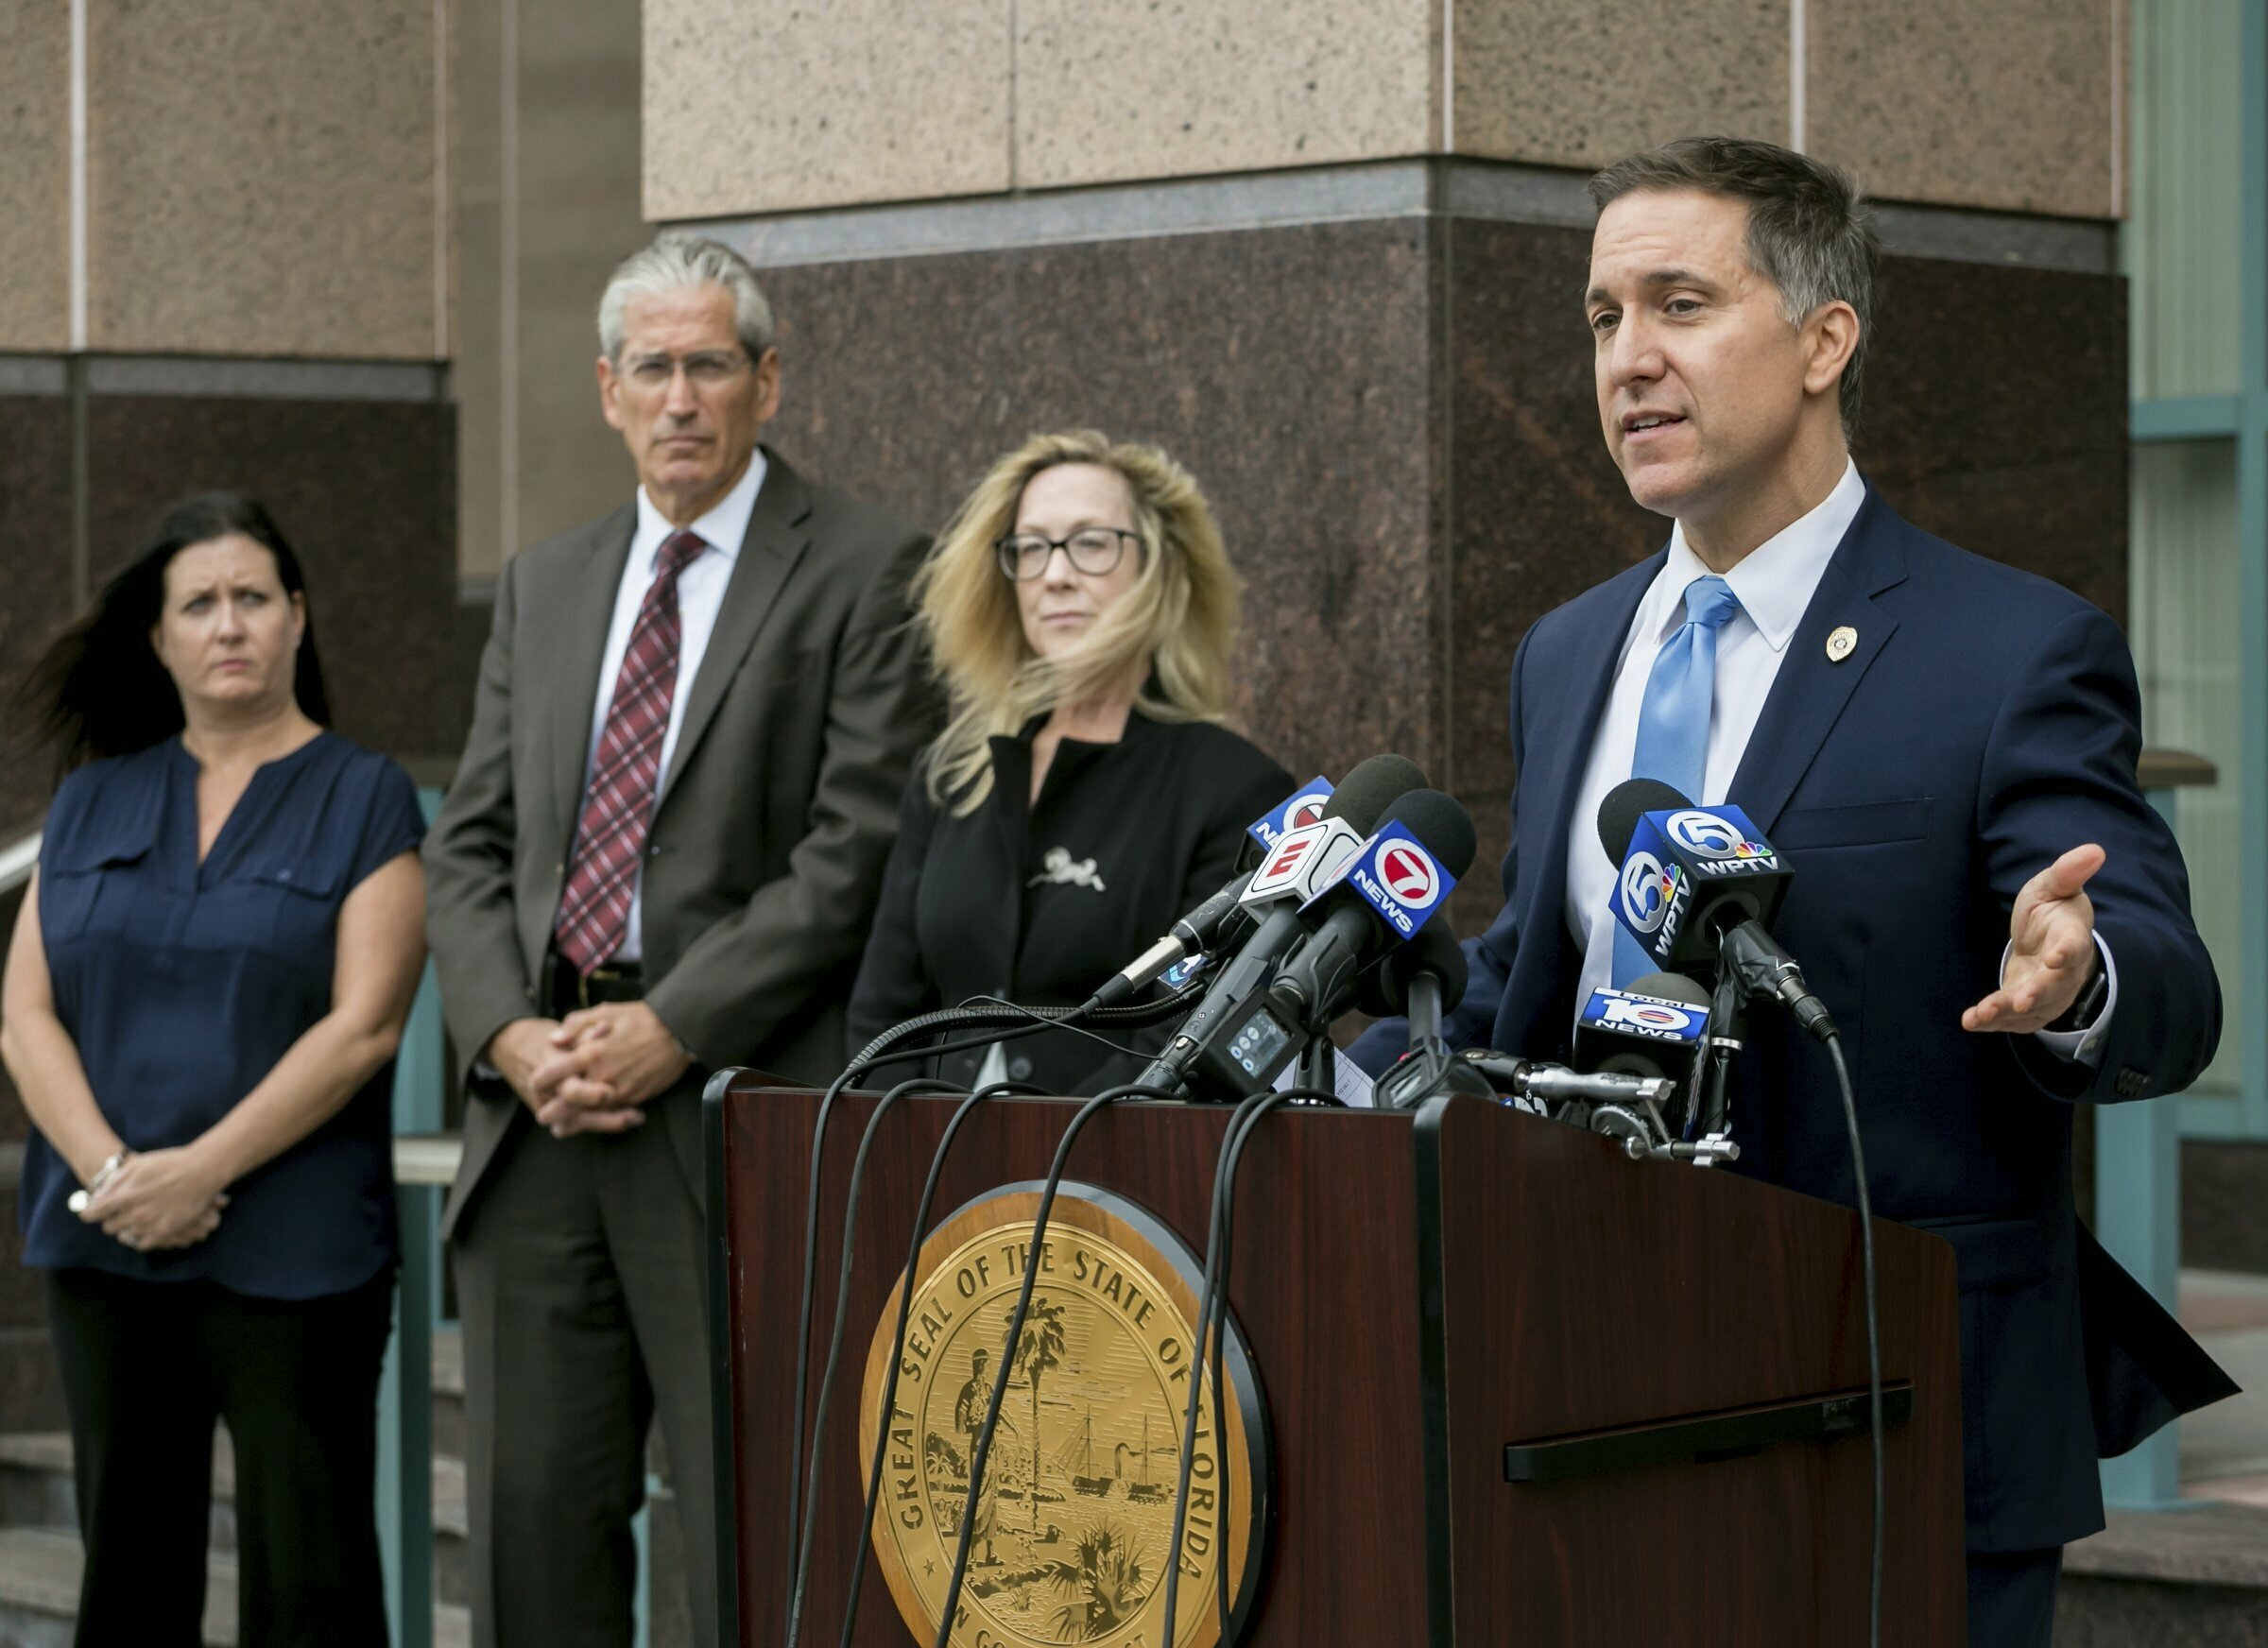 Palm Beach County State Attorney Dave Aronberg speaks to the media with assistants, from left to right, Judy Arco, Al Johnson, and Elizabeth Neto, about charges in recent prostitution investigations outside his offices Monday, Feb. 25, 2019 in West Palm Beach, Fla. New England Patriots owner Robert Kraft visited a Florida massage parlor for sex acts the night before and the morning of last month's AFC Championship Game, which he attended in Kansas City, authorities said in documents charging him with two misdemeanor counts of soliciting prostitution. (Richard Graulich/Palm Beach Post via AP)